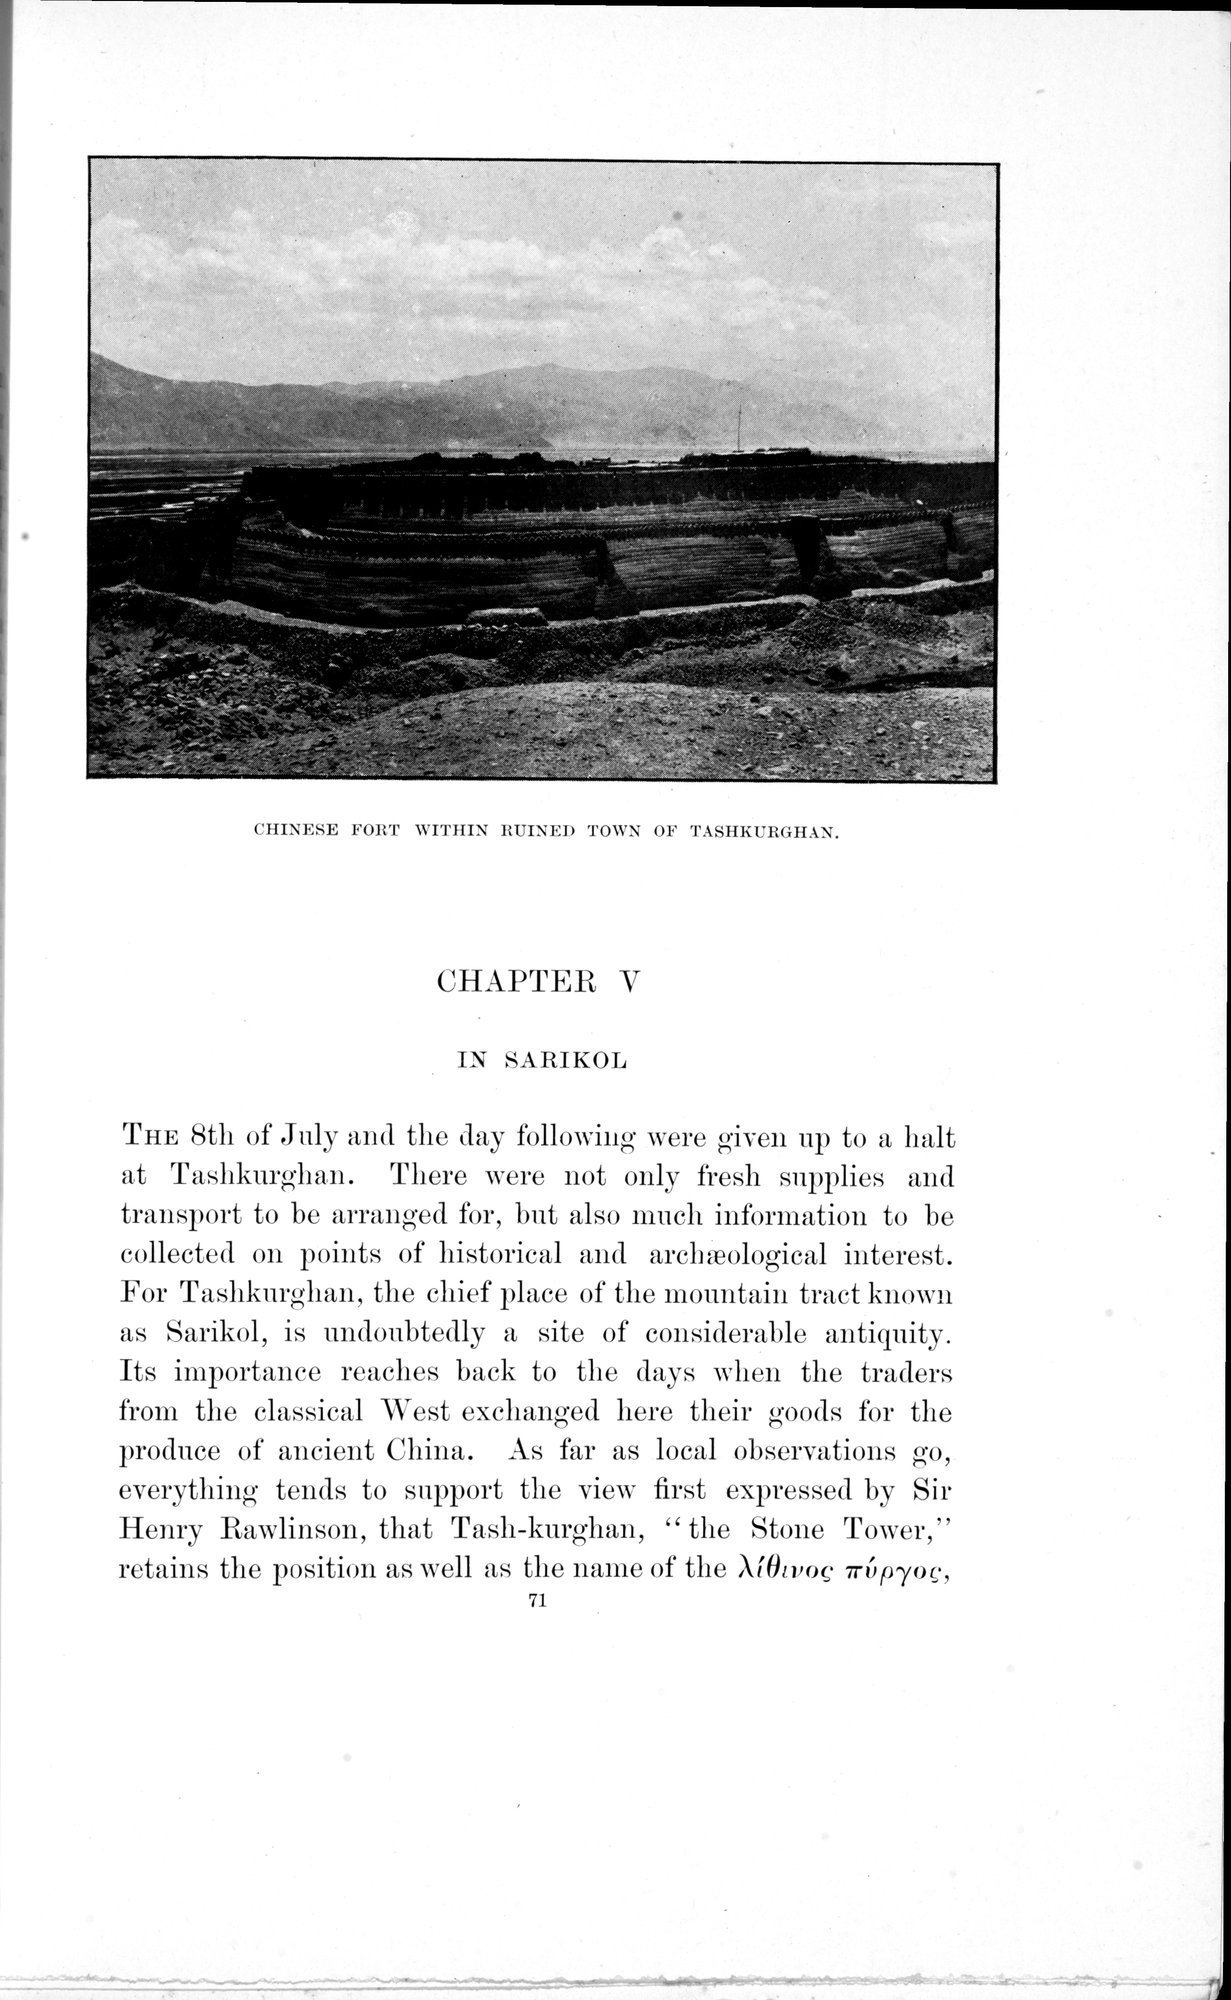 Sand-Buried Ruins of Khotan : vol.1 / Page 123 (Grayscale High Resolution Image)